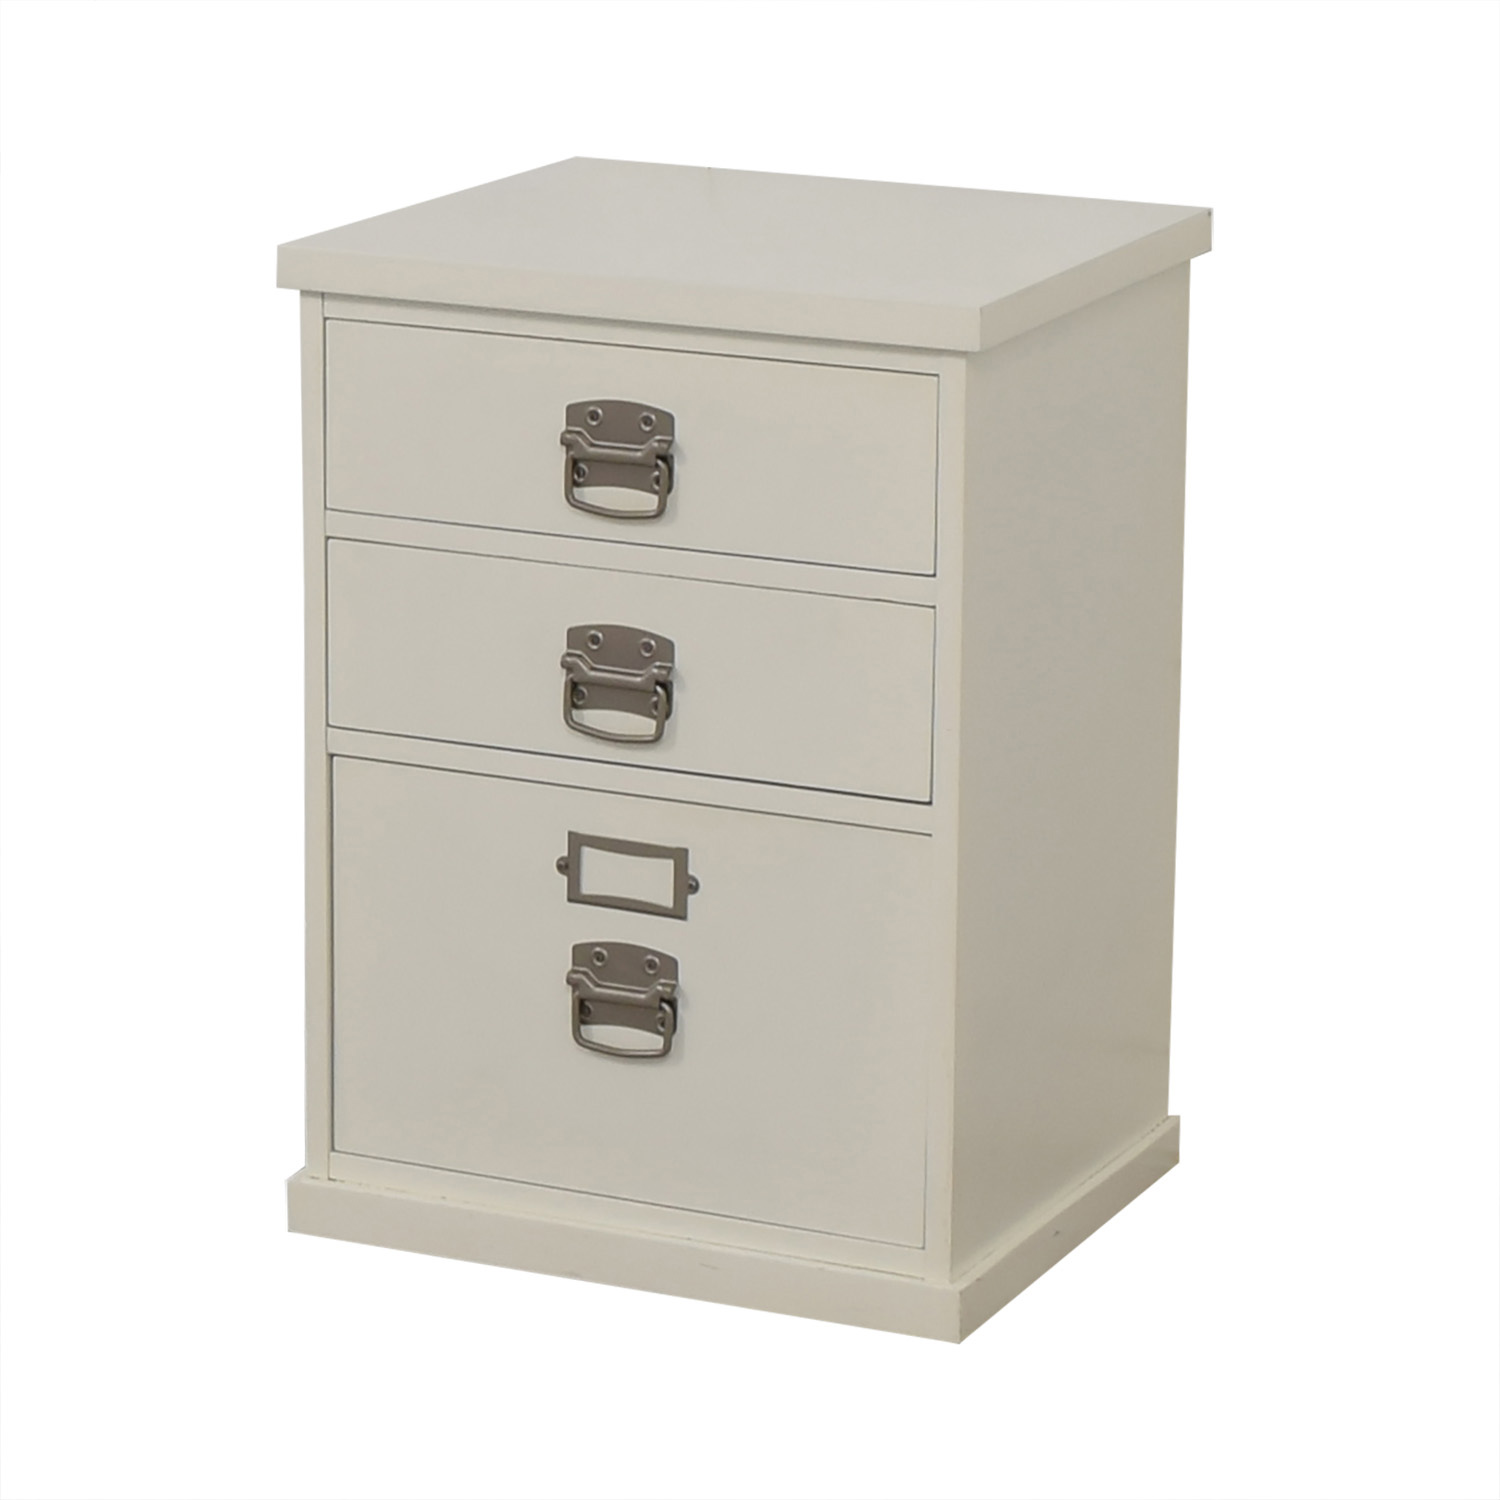 Pottery Barn Pottery Barn Bedford White Three-Drawer File Cabinet White